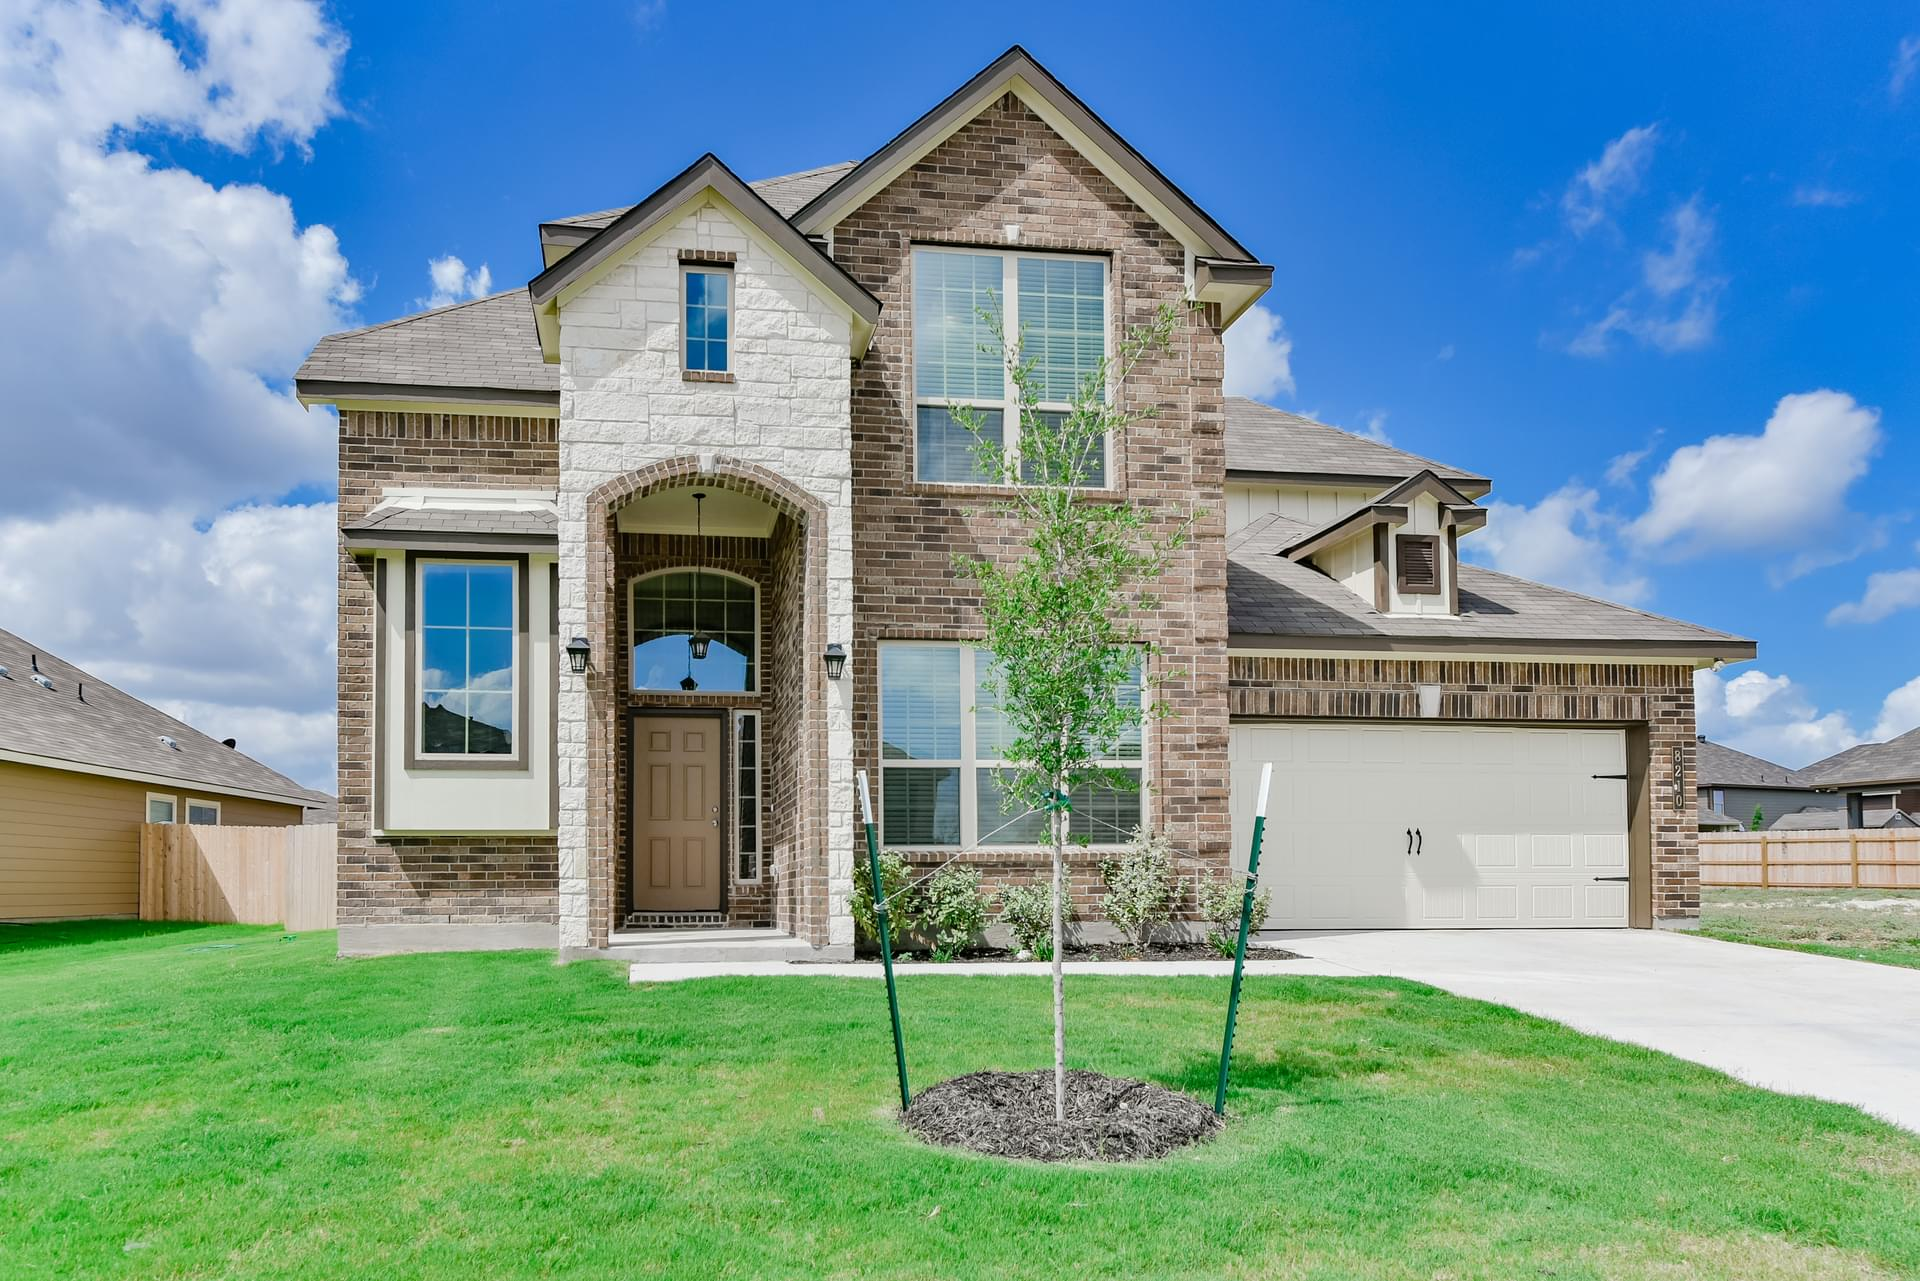 3112 Risinger Road in Waco, TX